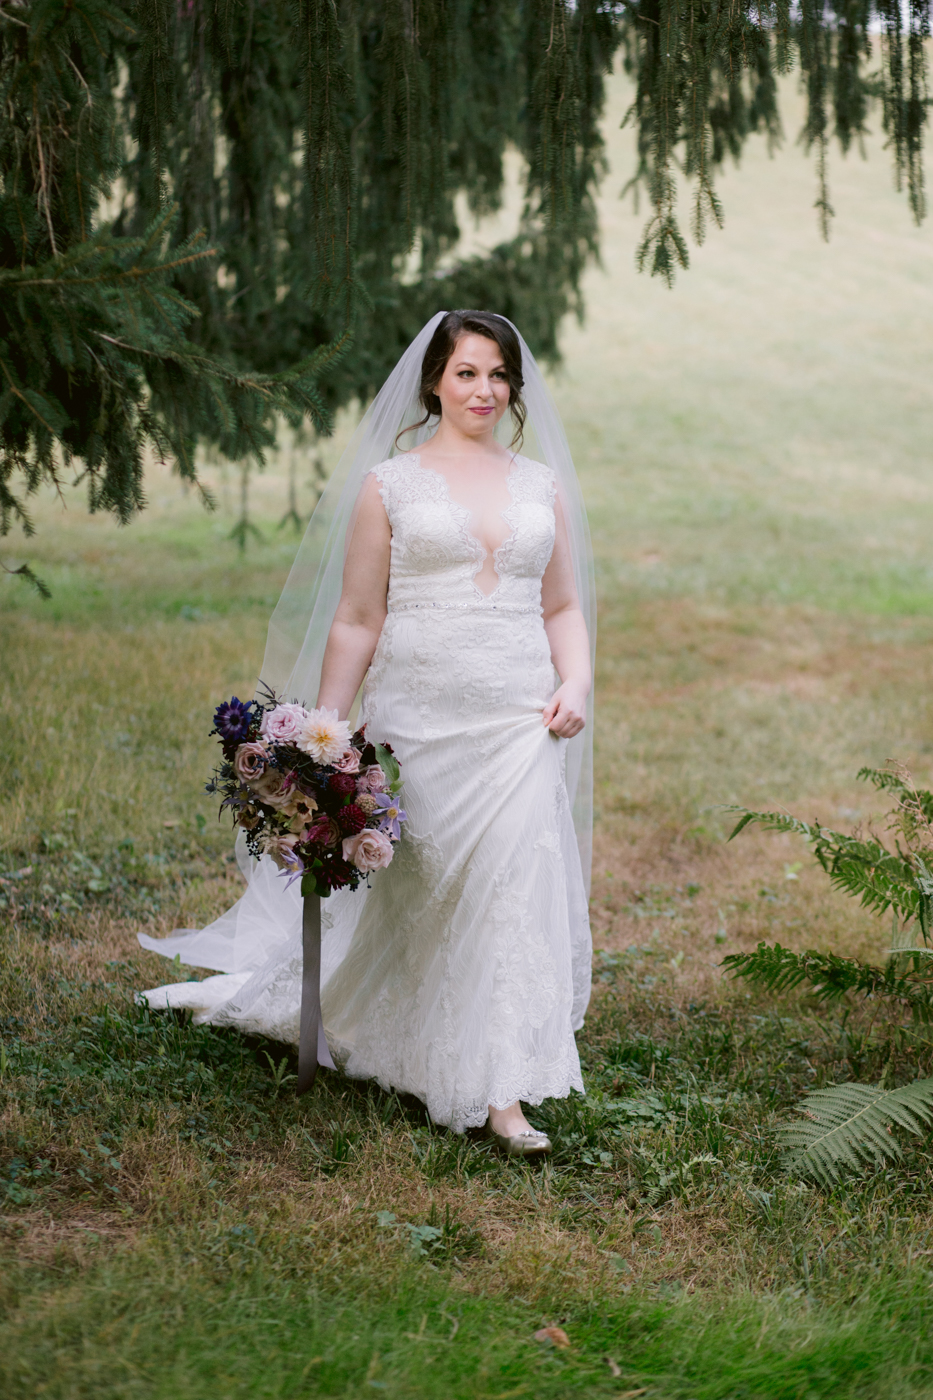 welkinweir-philadelphia-mainline-elegant-luxury-rustic-country-estate-wedding-photography-philly-photographer-fall-10.jpg